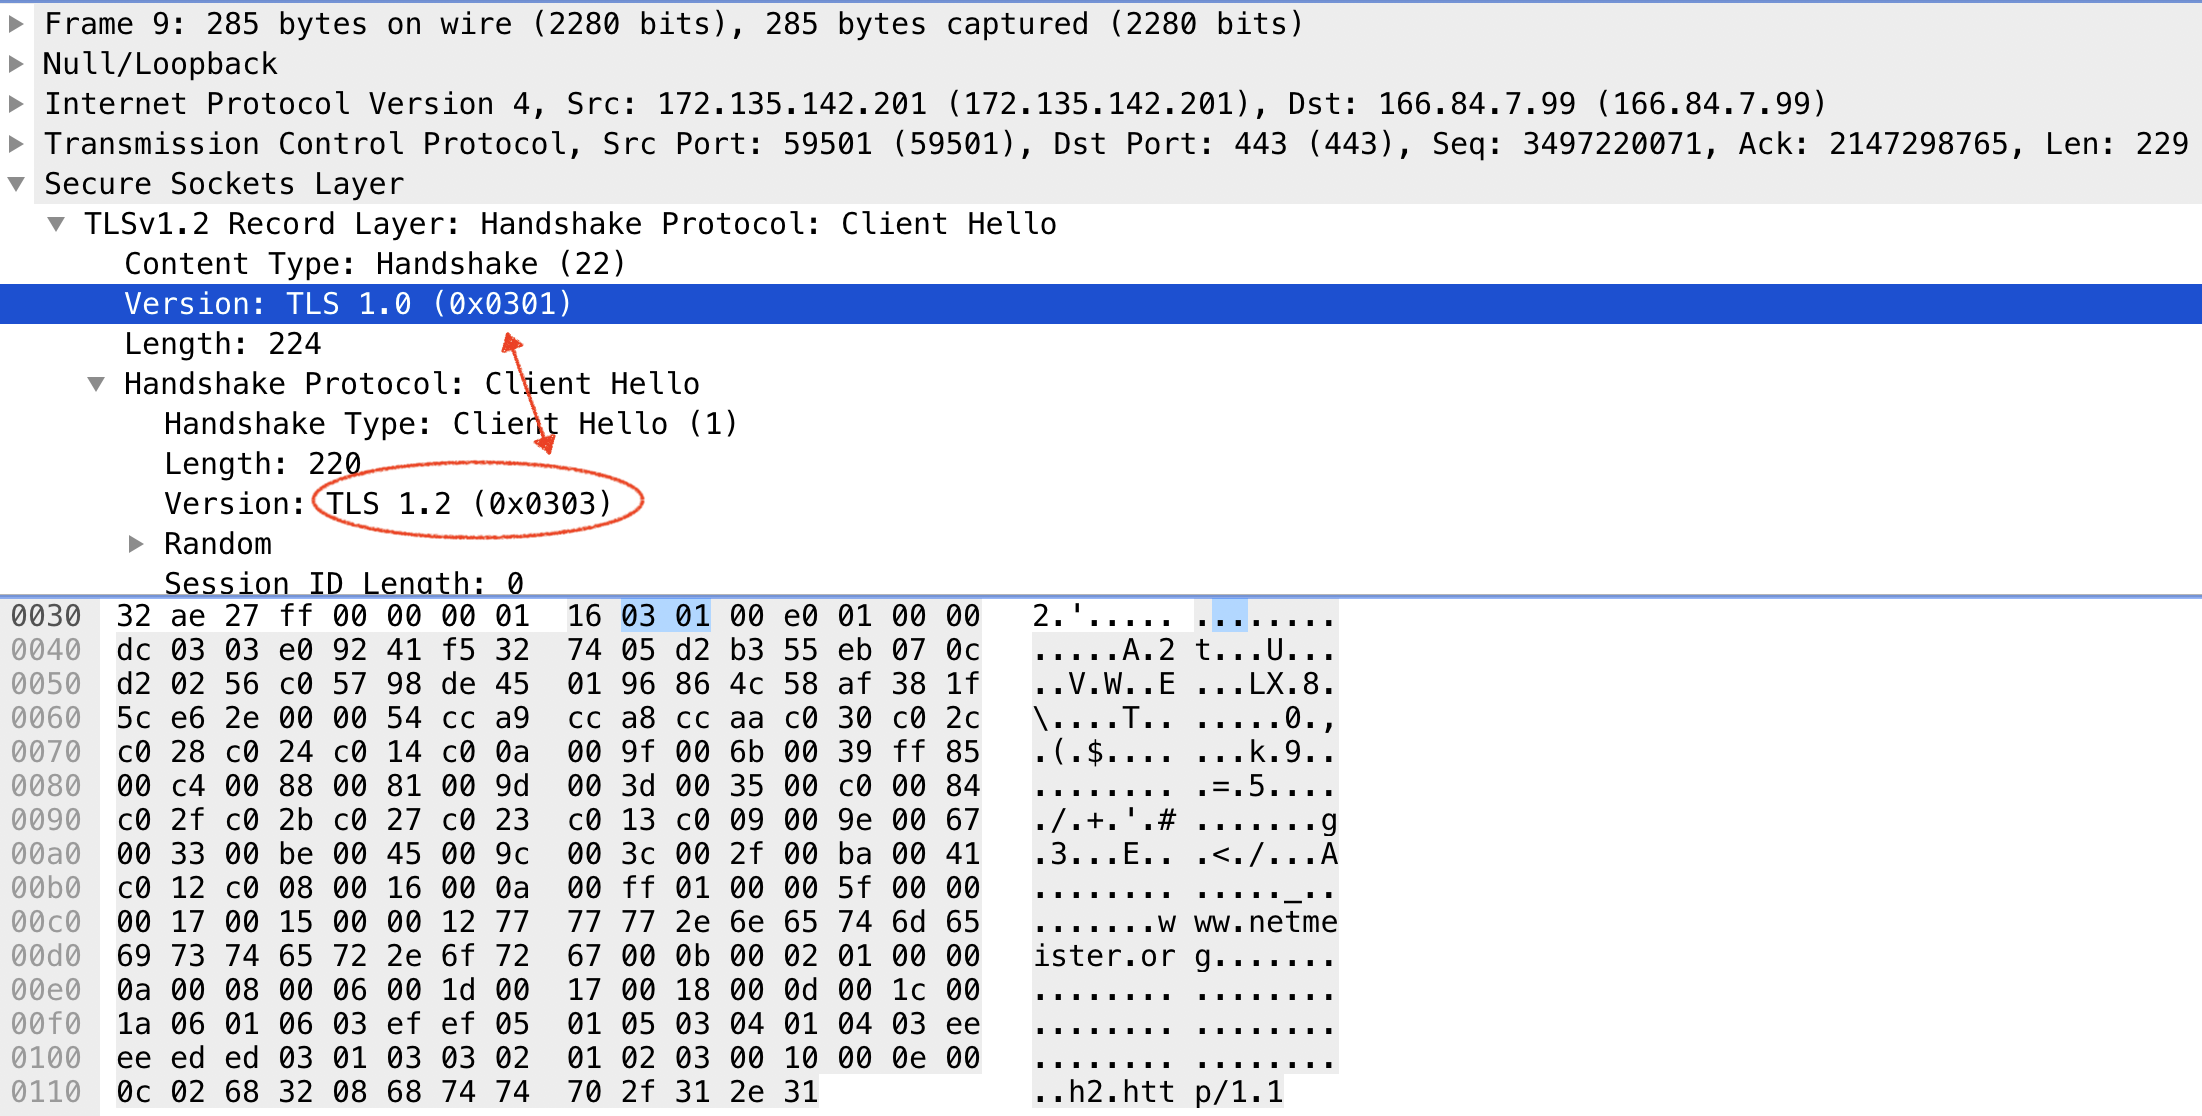 Capturing specific SSL and TLS version packets using tcpdump(8)